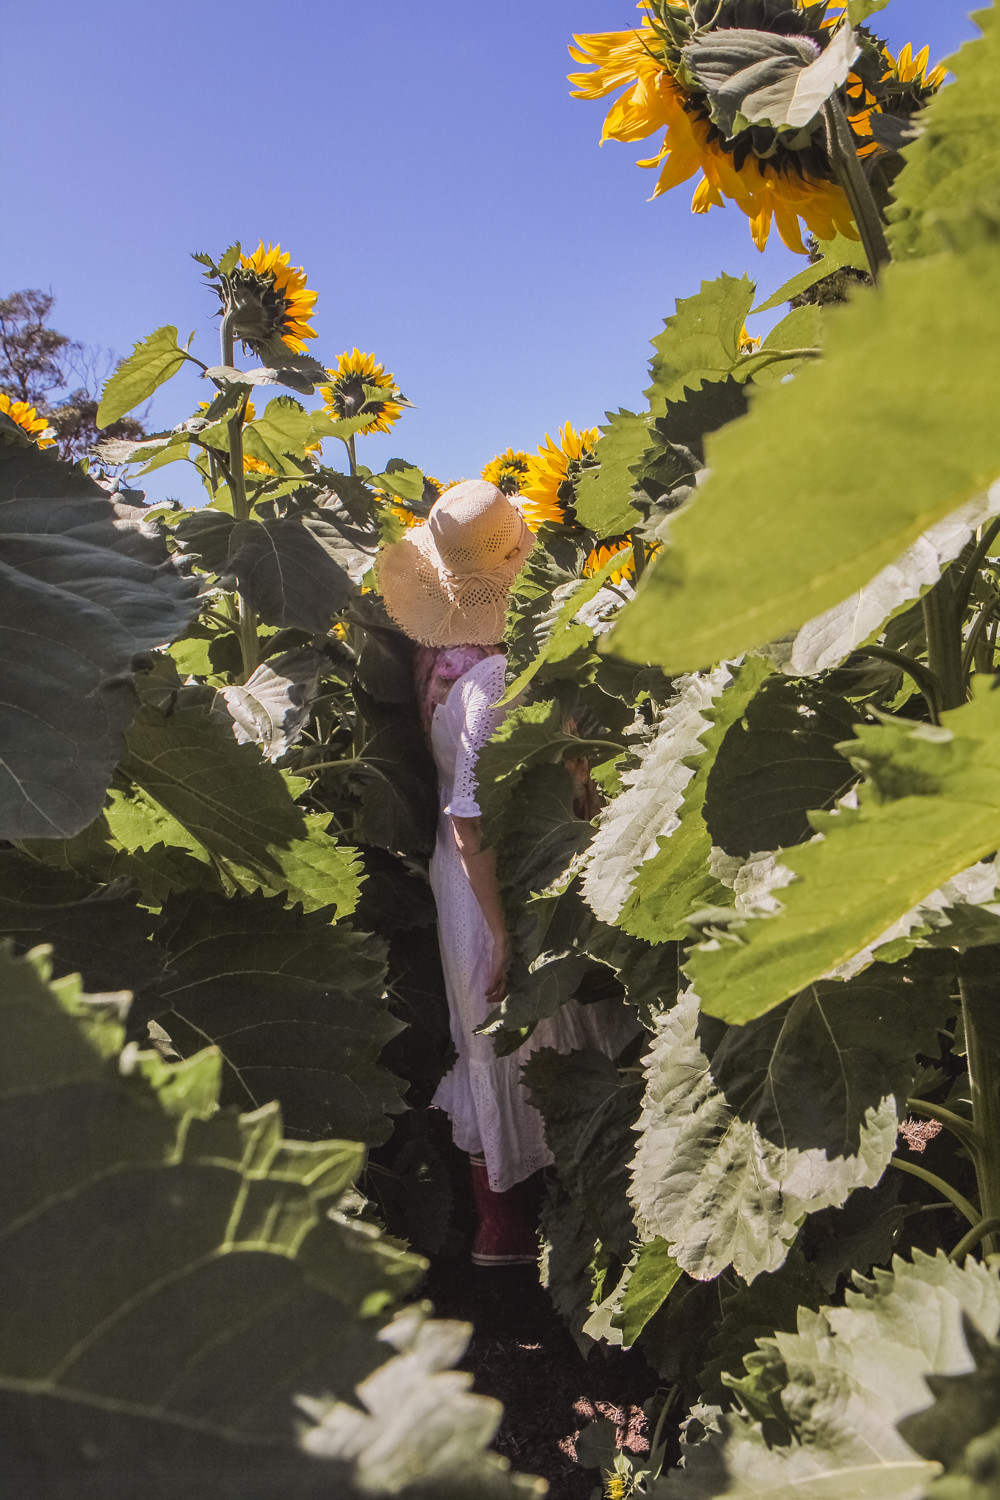 Goldfields girl disappearing into the sunflower field